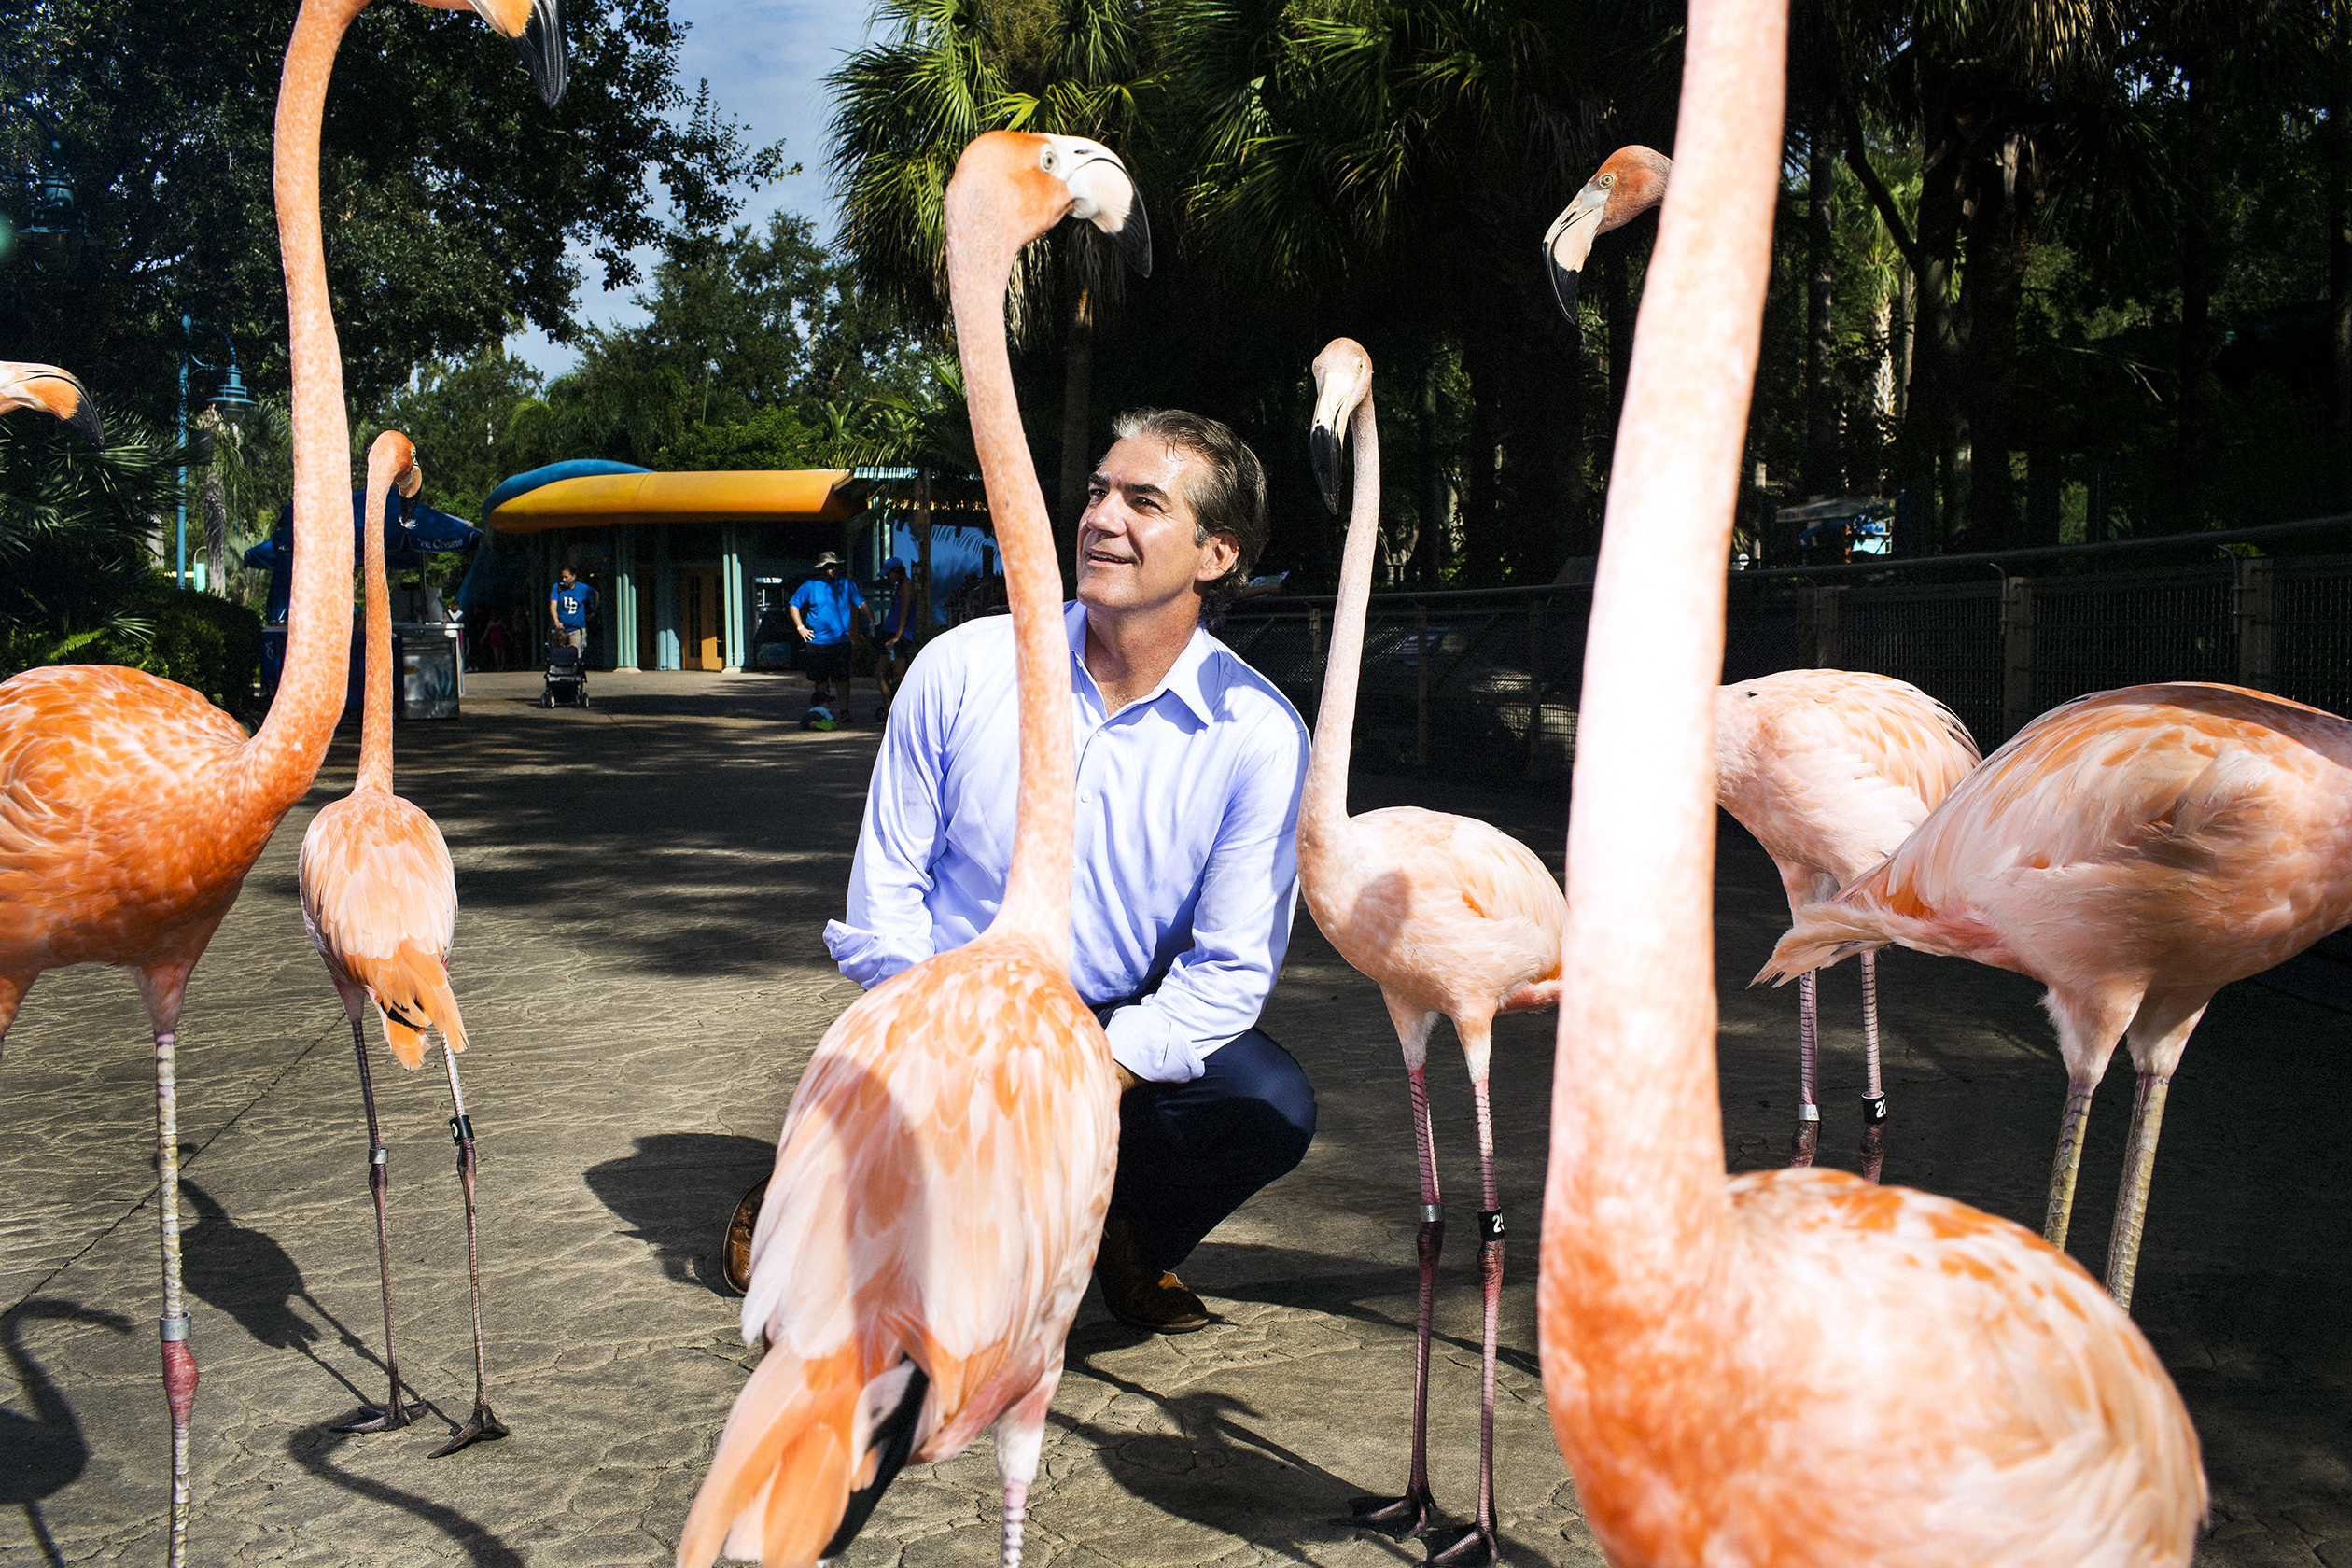 ORLANDO - AUG 8: Joel Manby, CEO, gets a birds eye view of flamingos who were walking through the park with staff at Sea World on Monday, August 8, 2016, in Orlando, Florida. (Photo by Landon Nordeman)